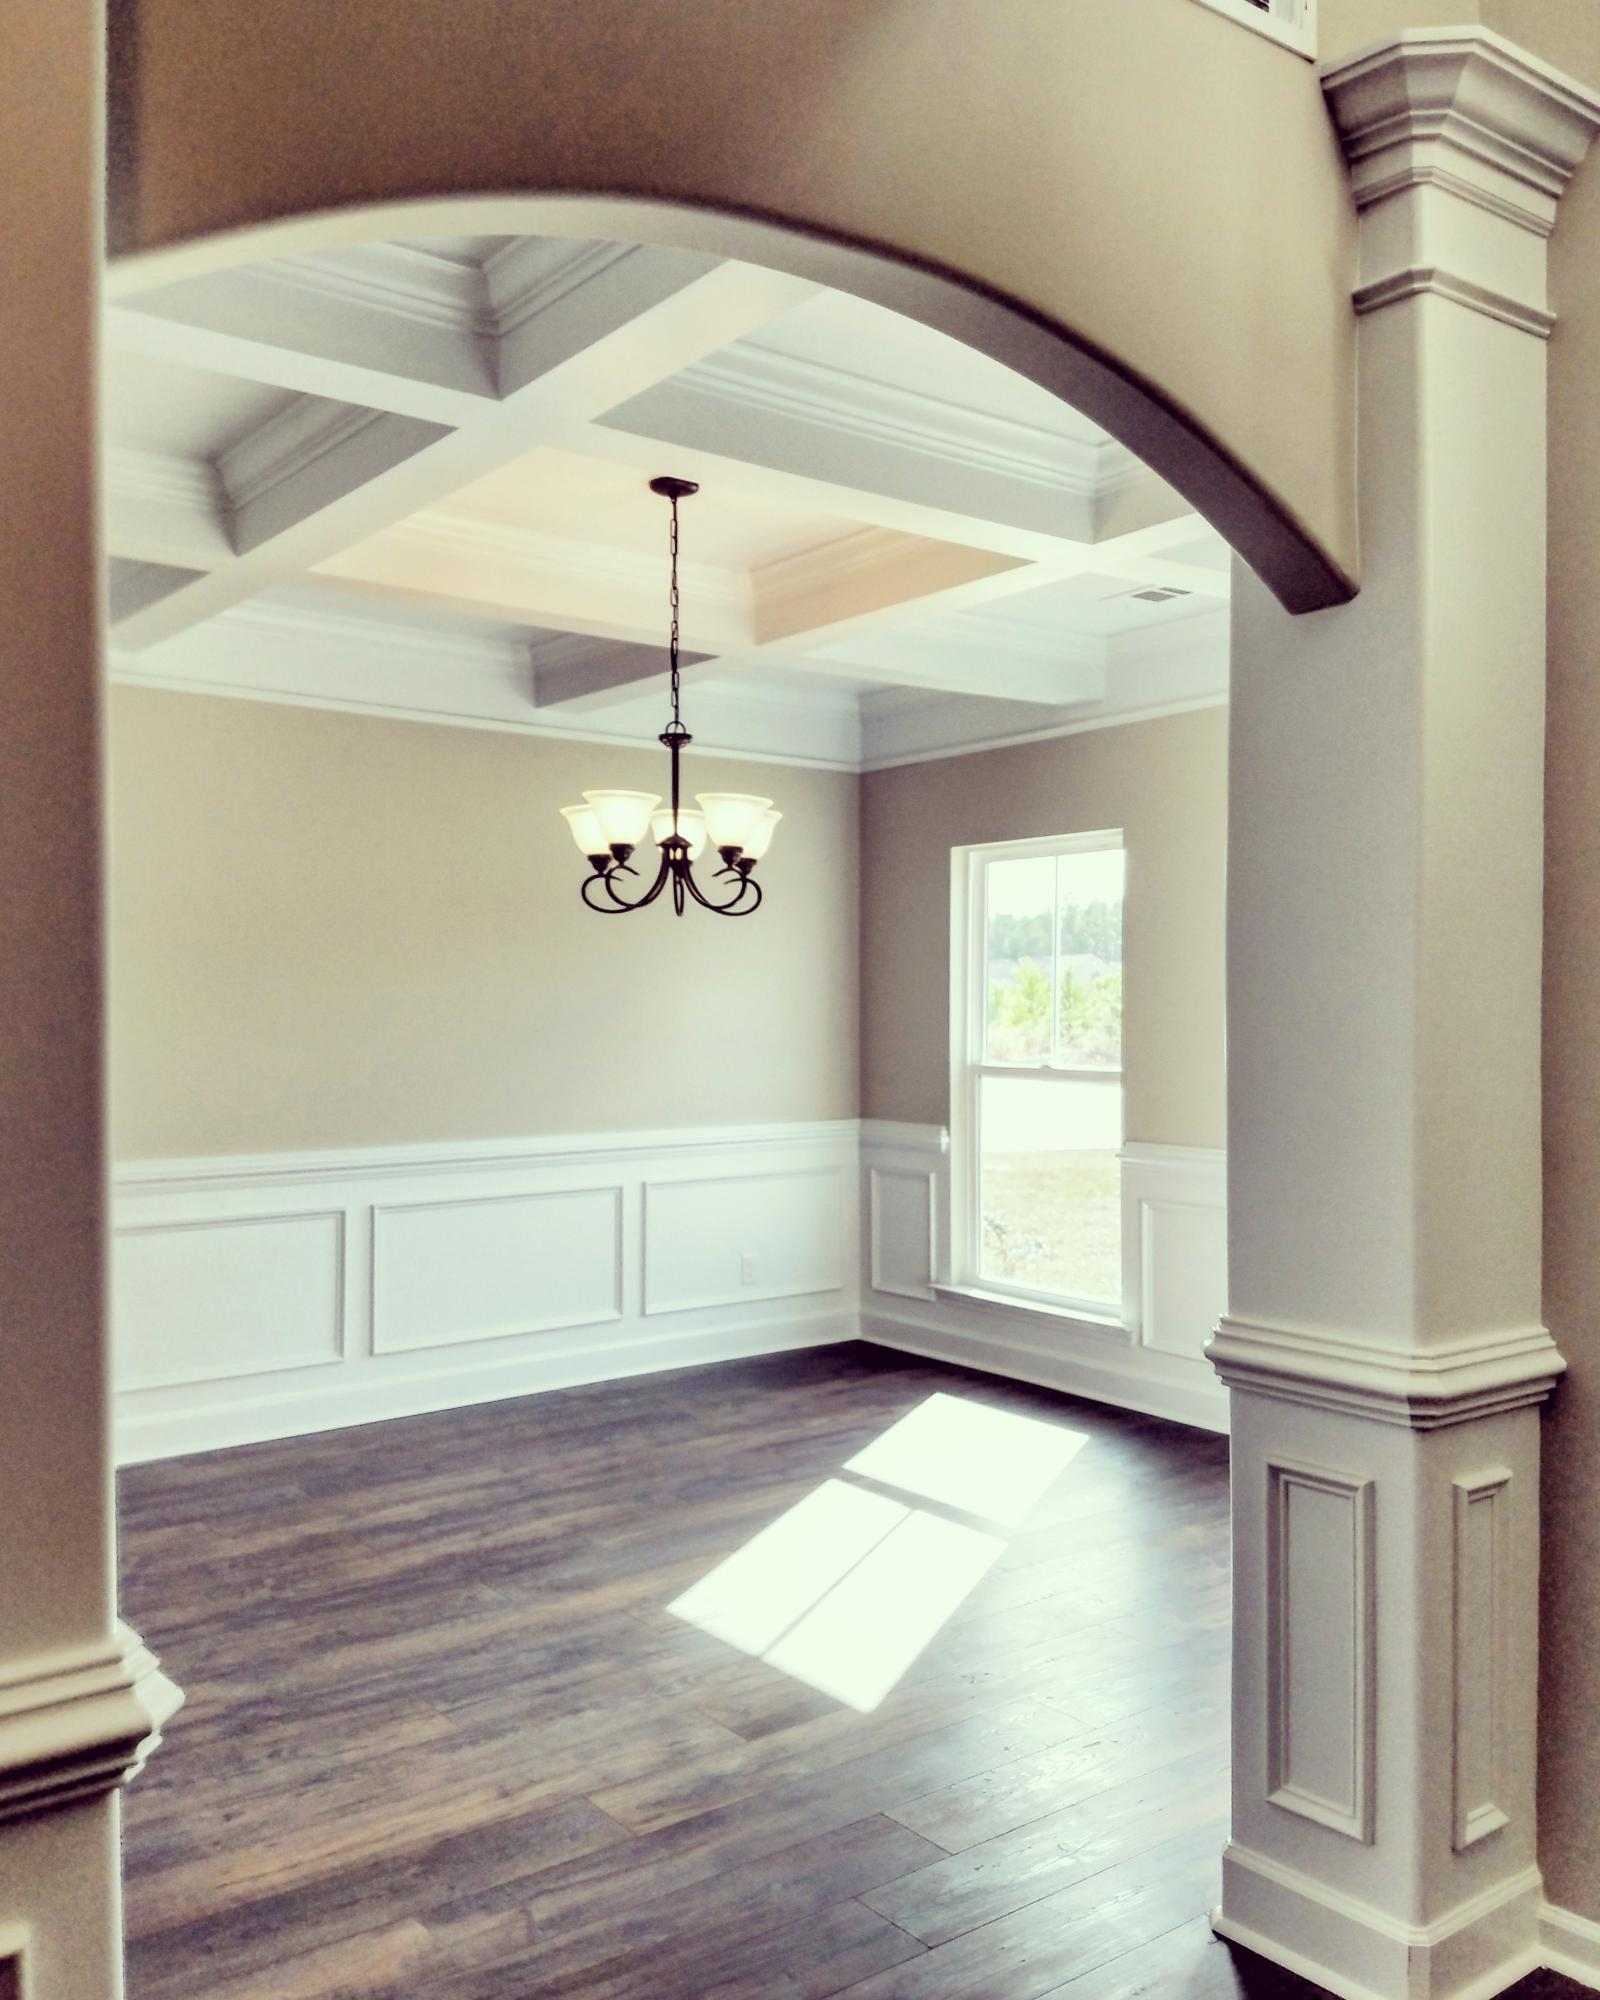 Living Area featured in the Crawford By Konter Quality Homes in Savannah, GA